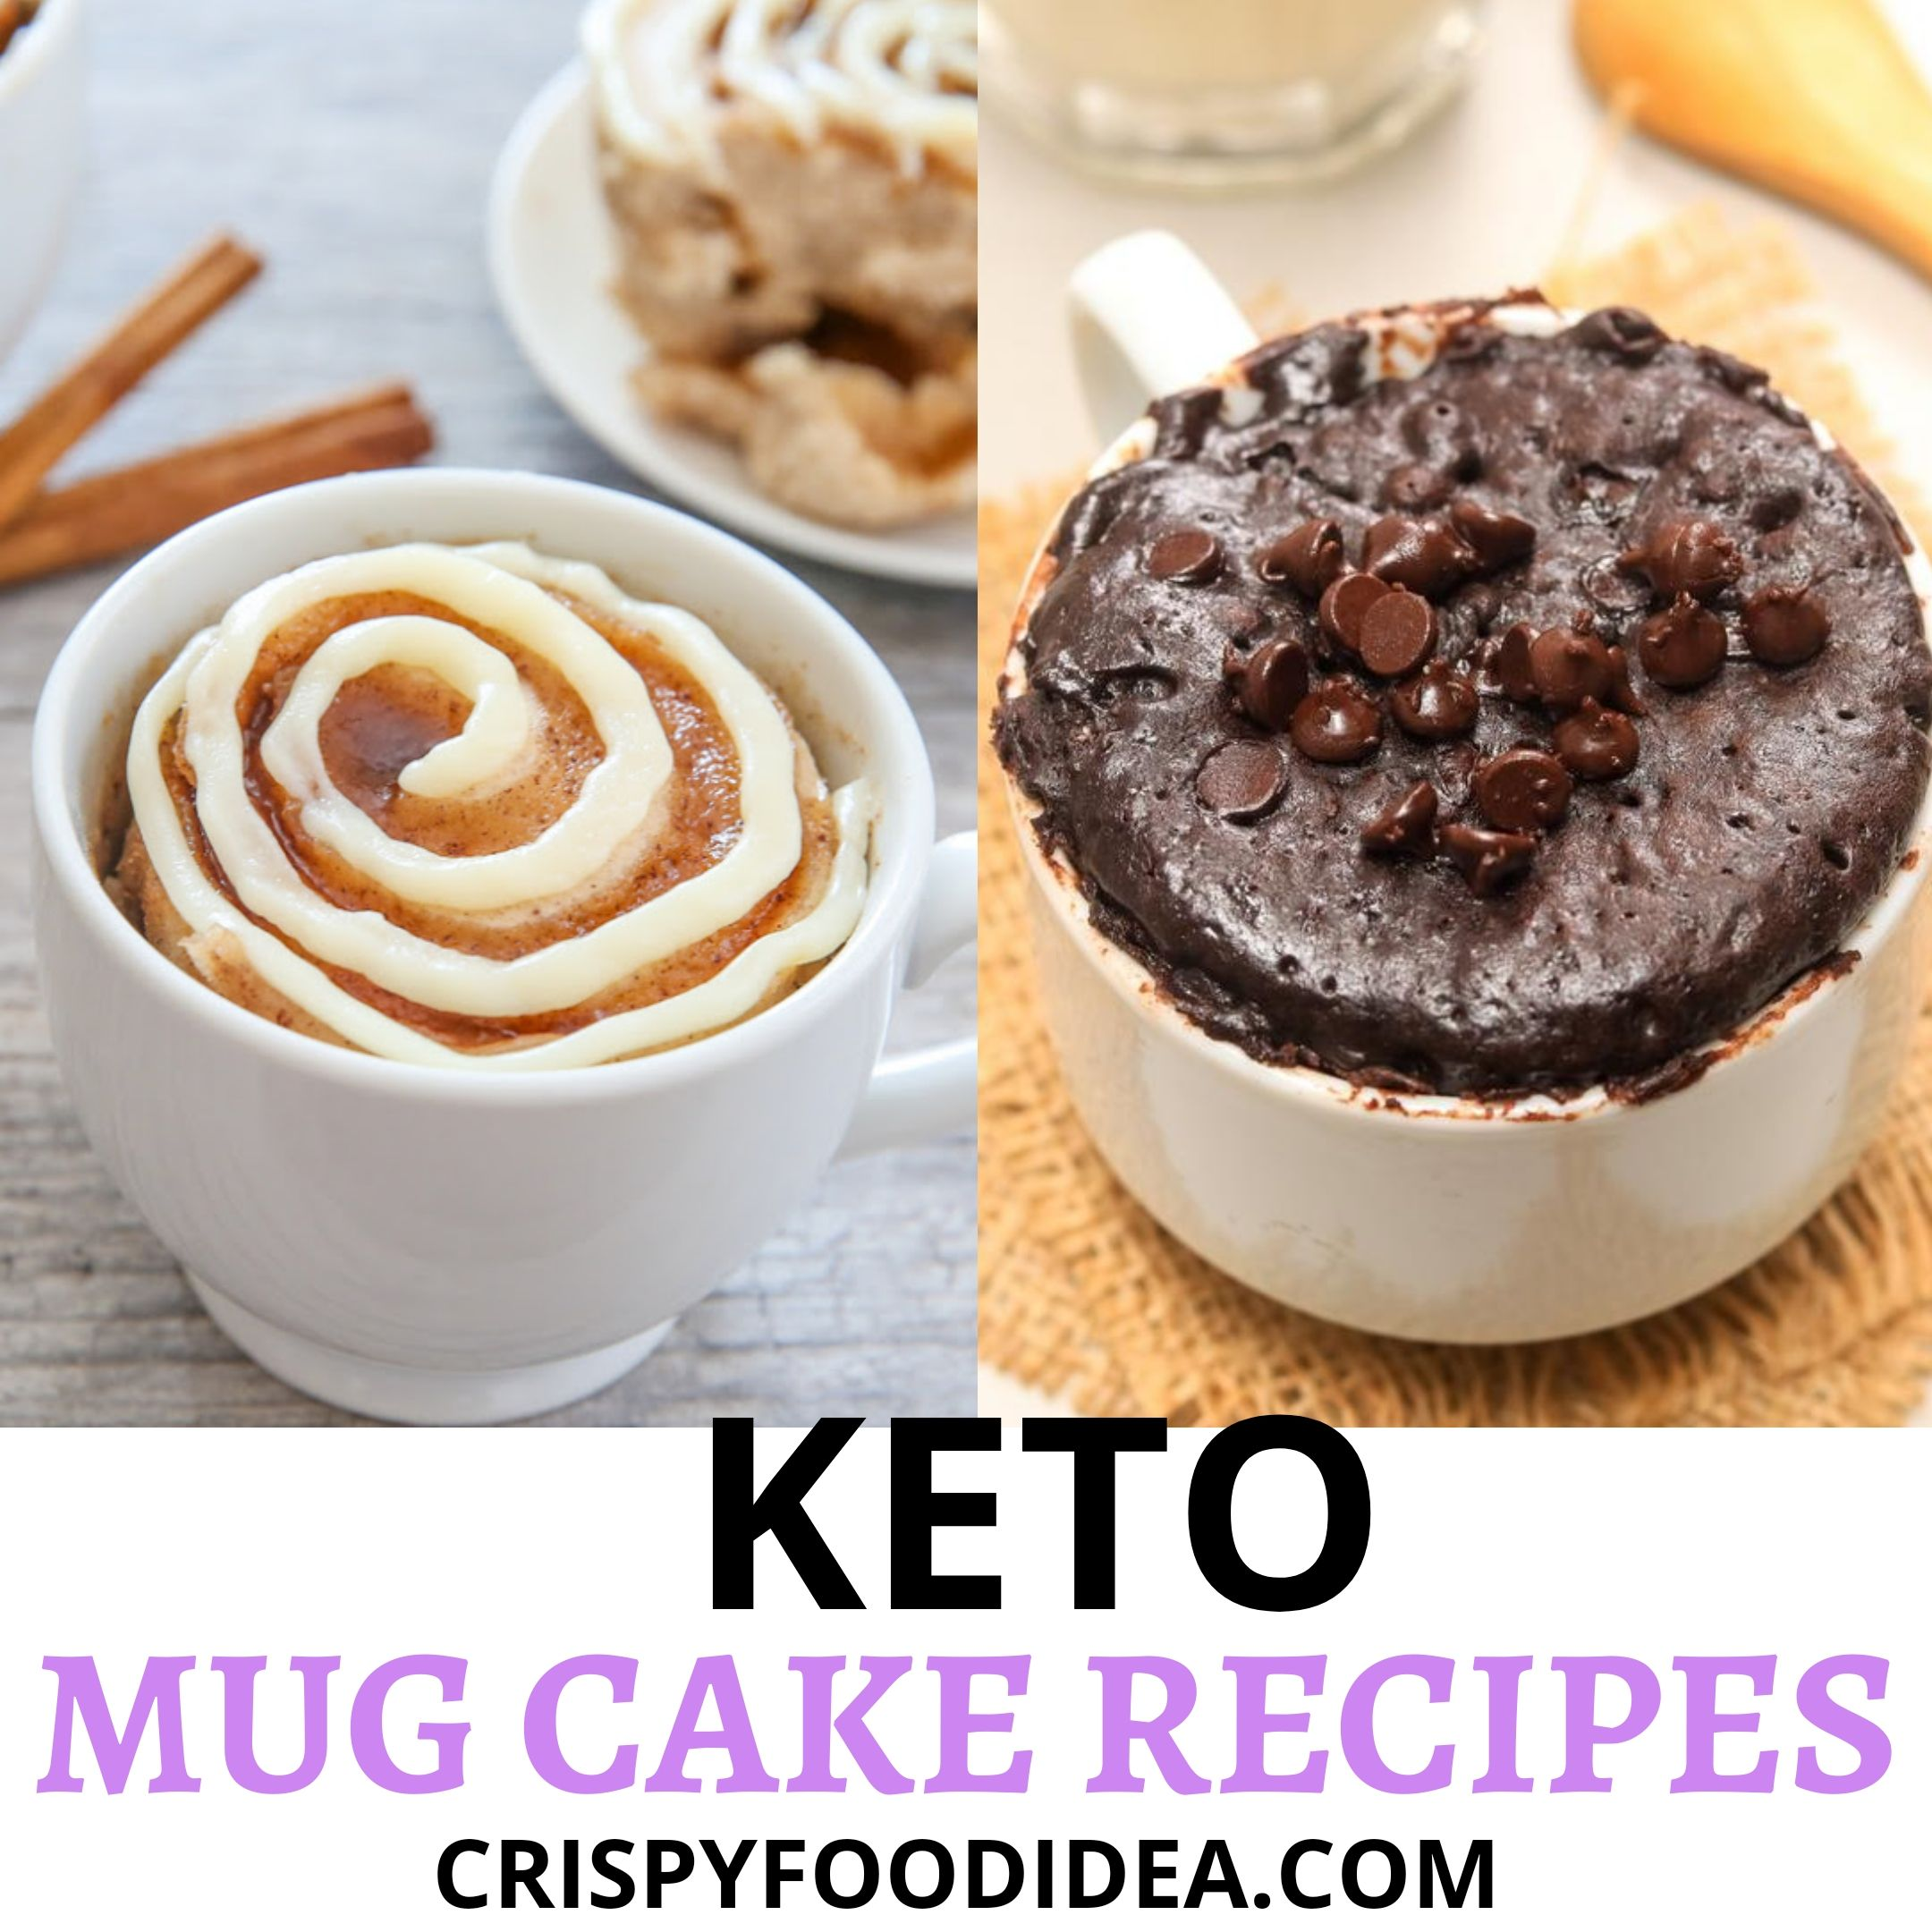 Keto Mug Cake Recipes